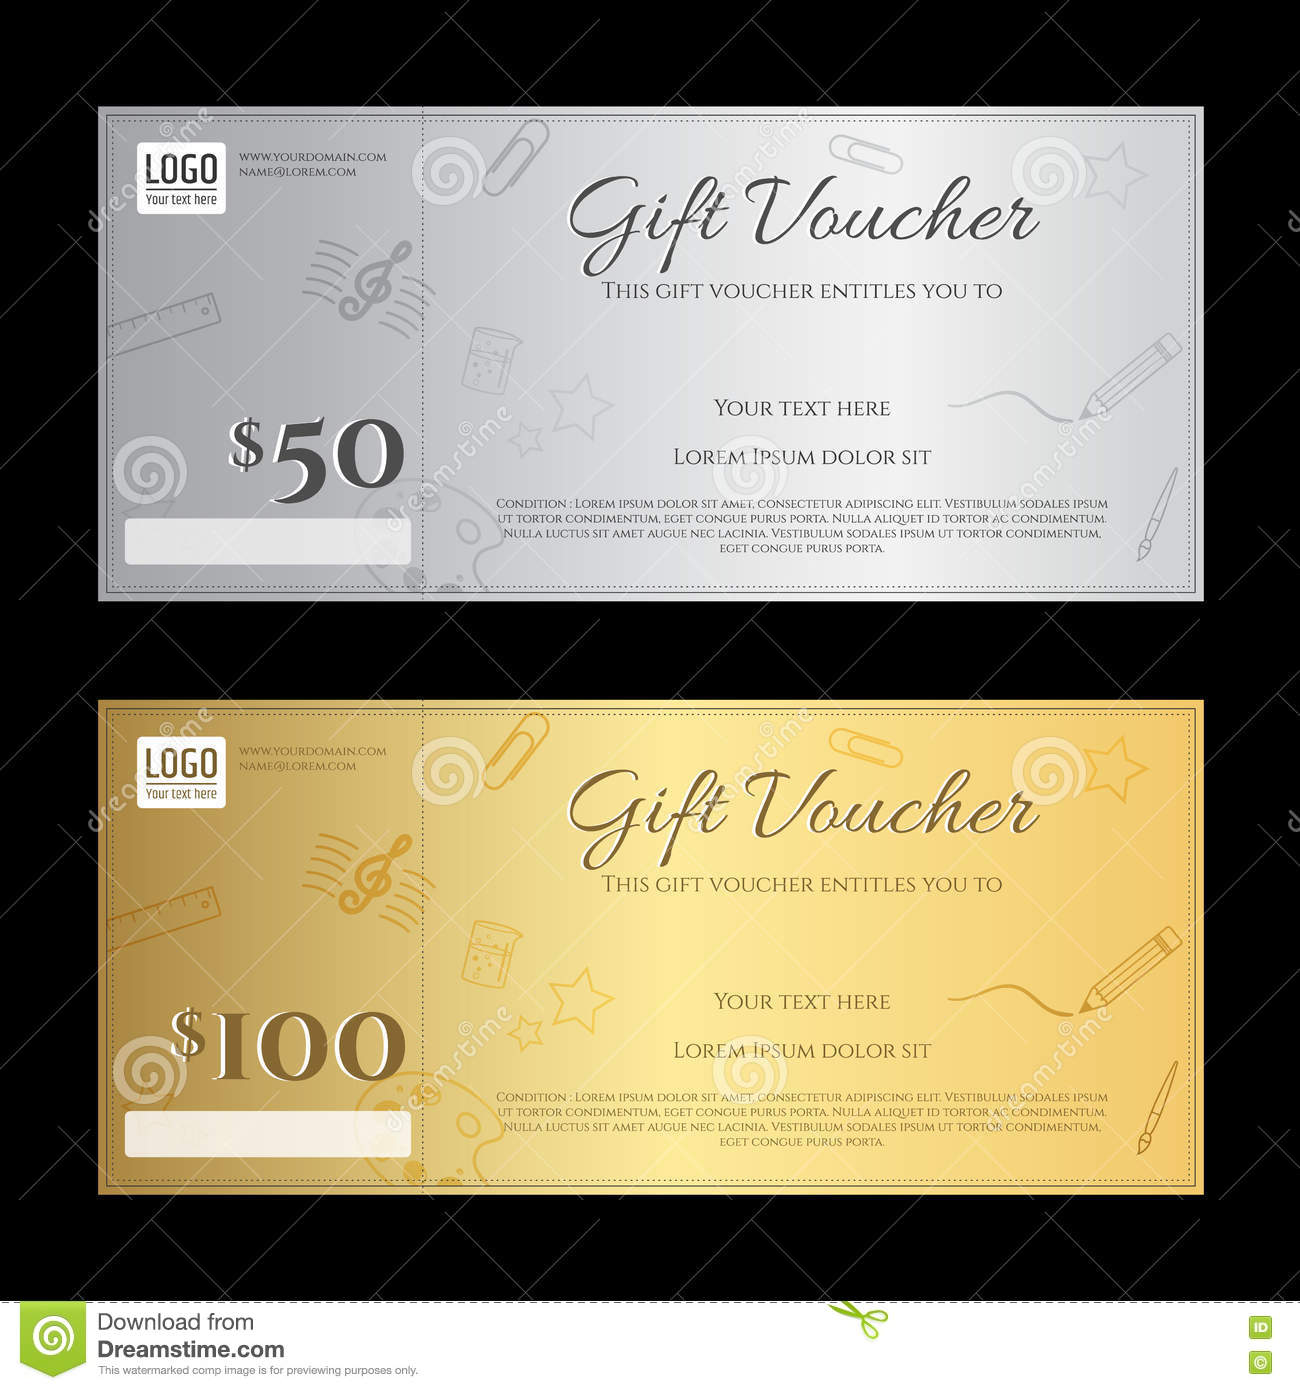 Gift Voucher Or Gift Certificate Template In Luxury Theme  Gift Voucher Certificate Template